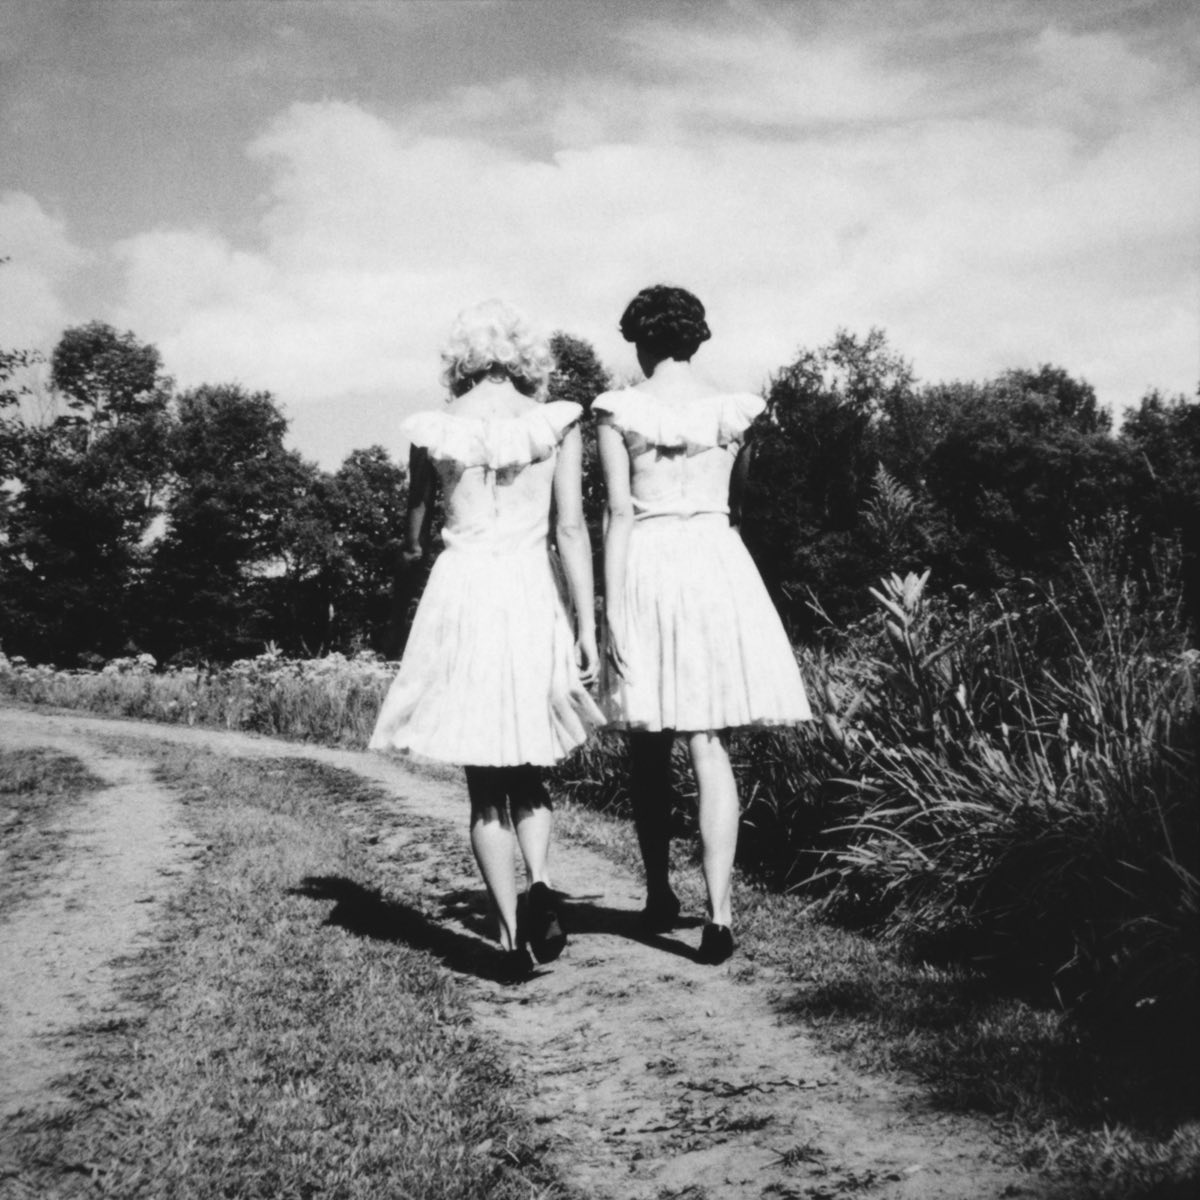 Marianna Rothen : Shadows in Paradise